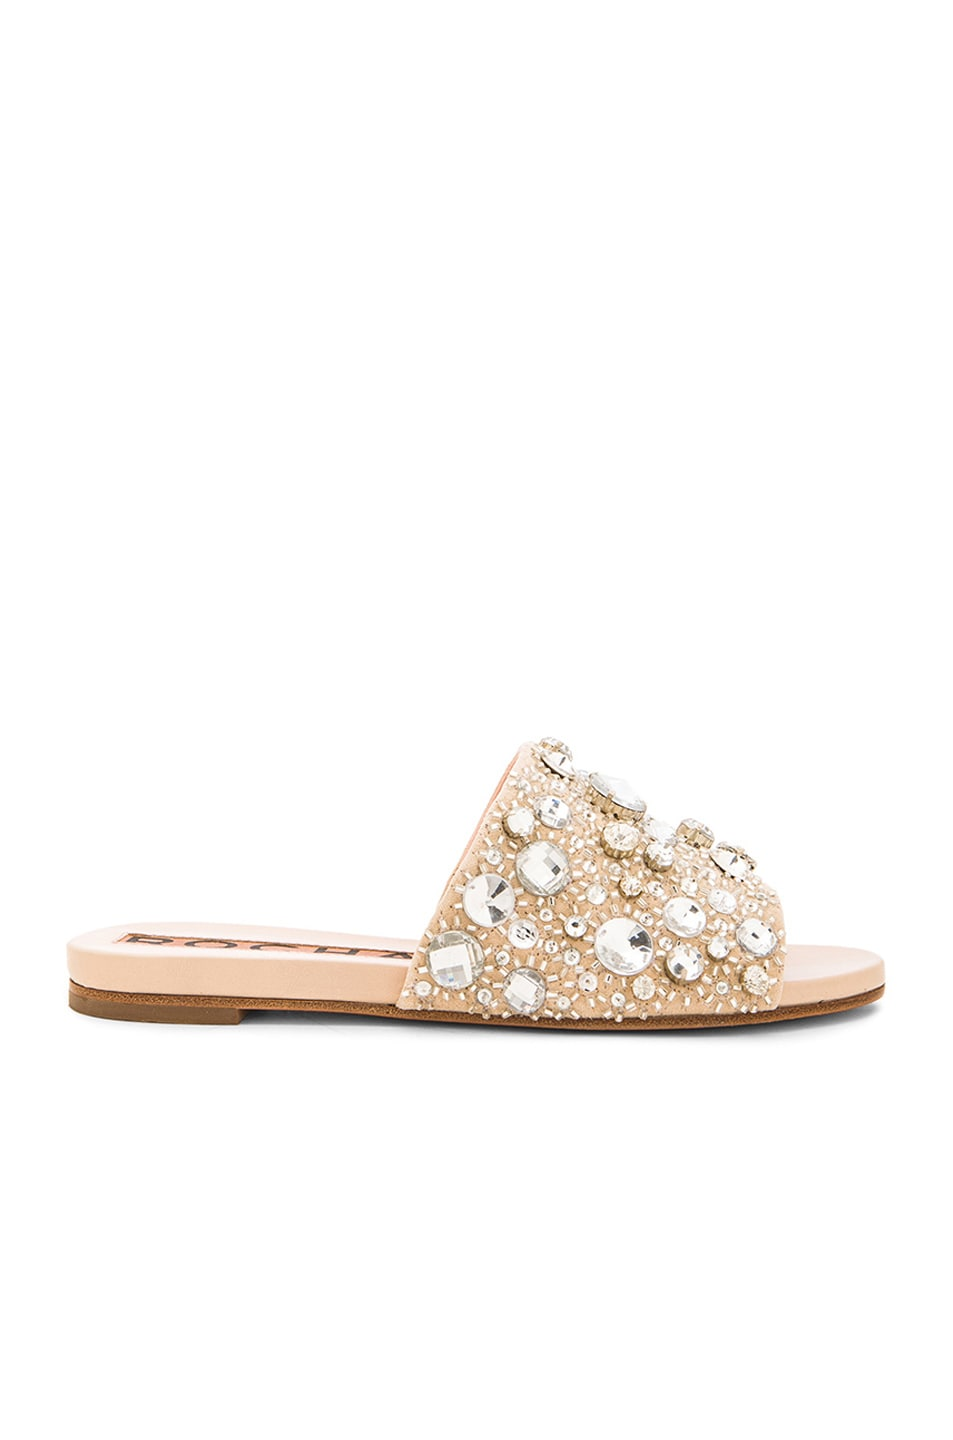 cheap sale fast delivery Rochas crystal logo slides cheap store 4suvwLrn